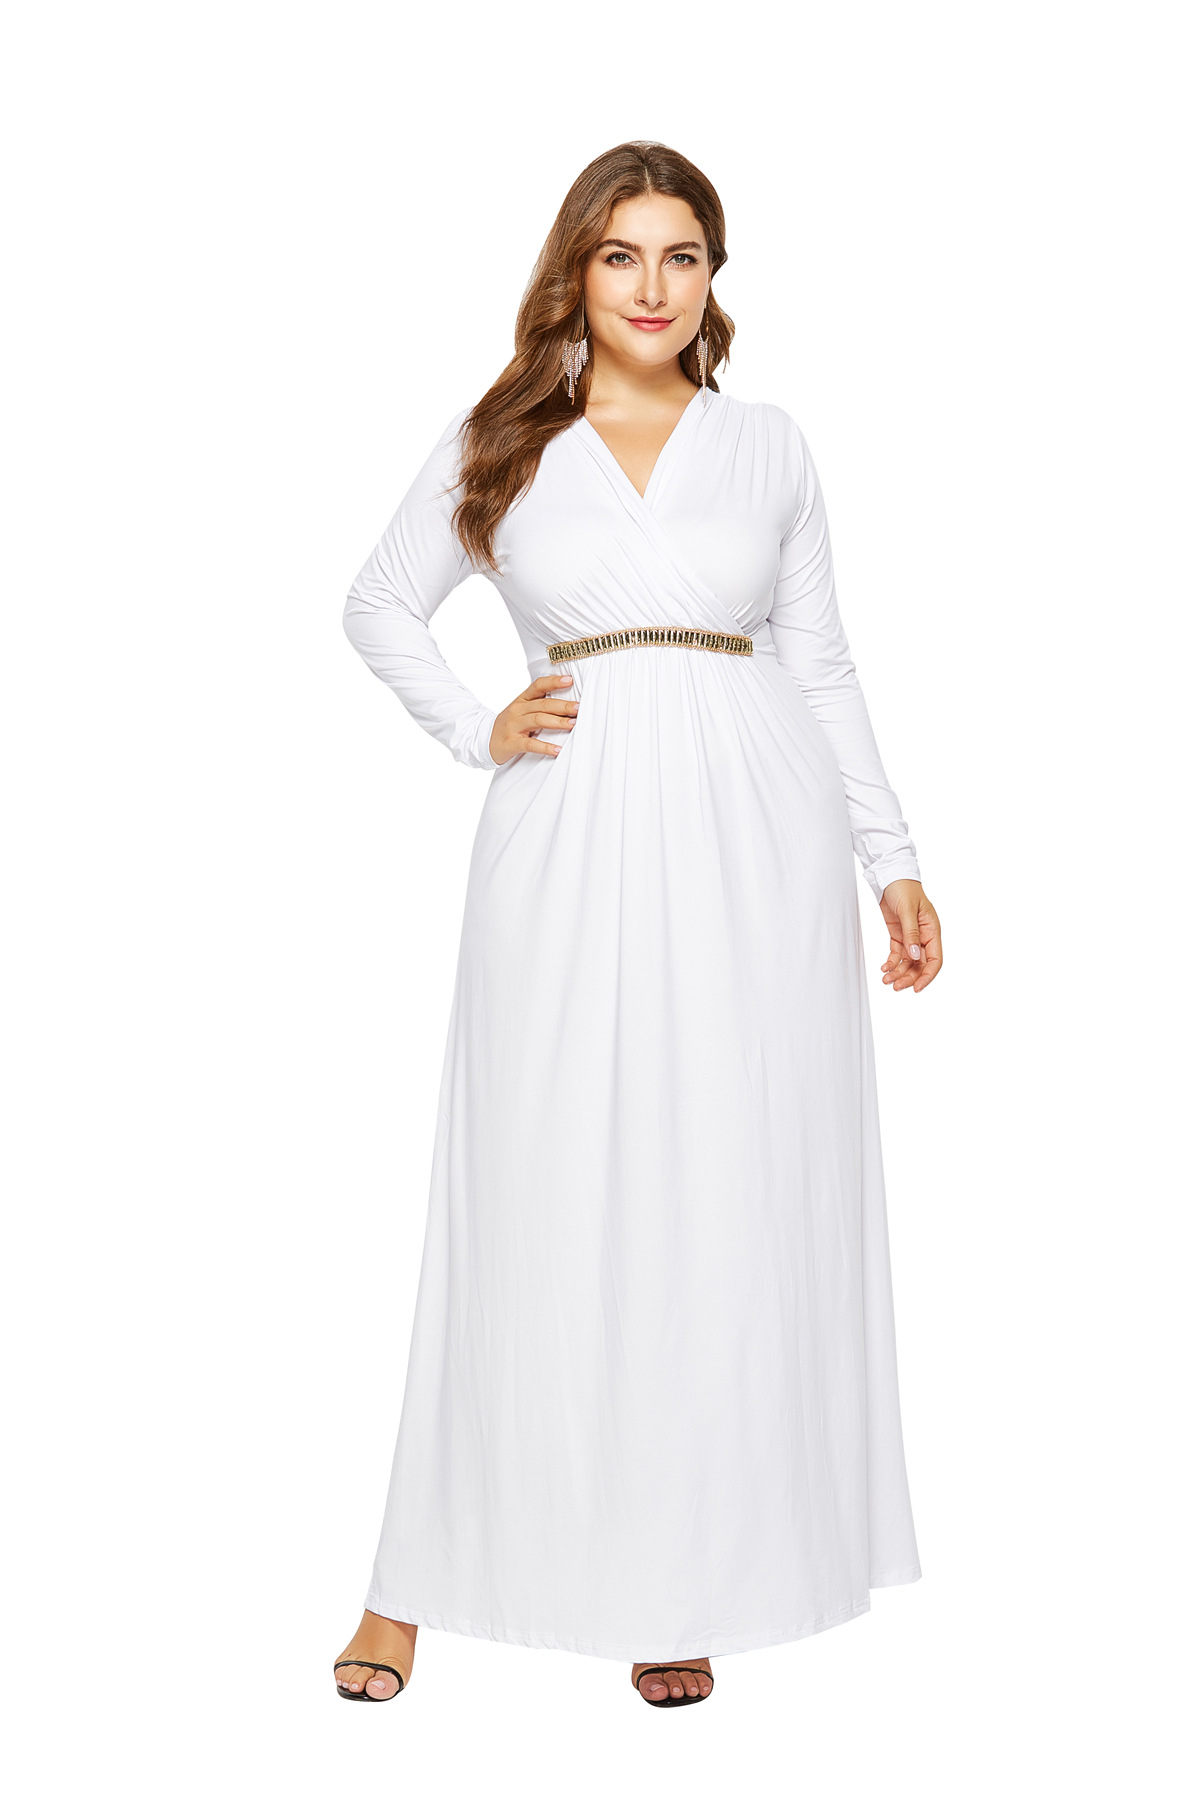 Women Maxi Dress V Neck Long Sleeve Elastic Waist Plus Size Long Formal  Evening Party Dress Off White